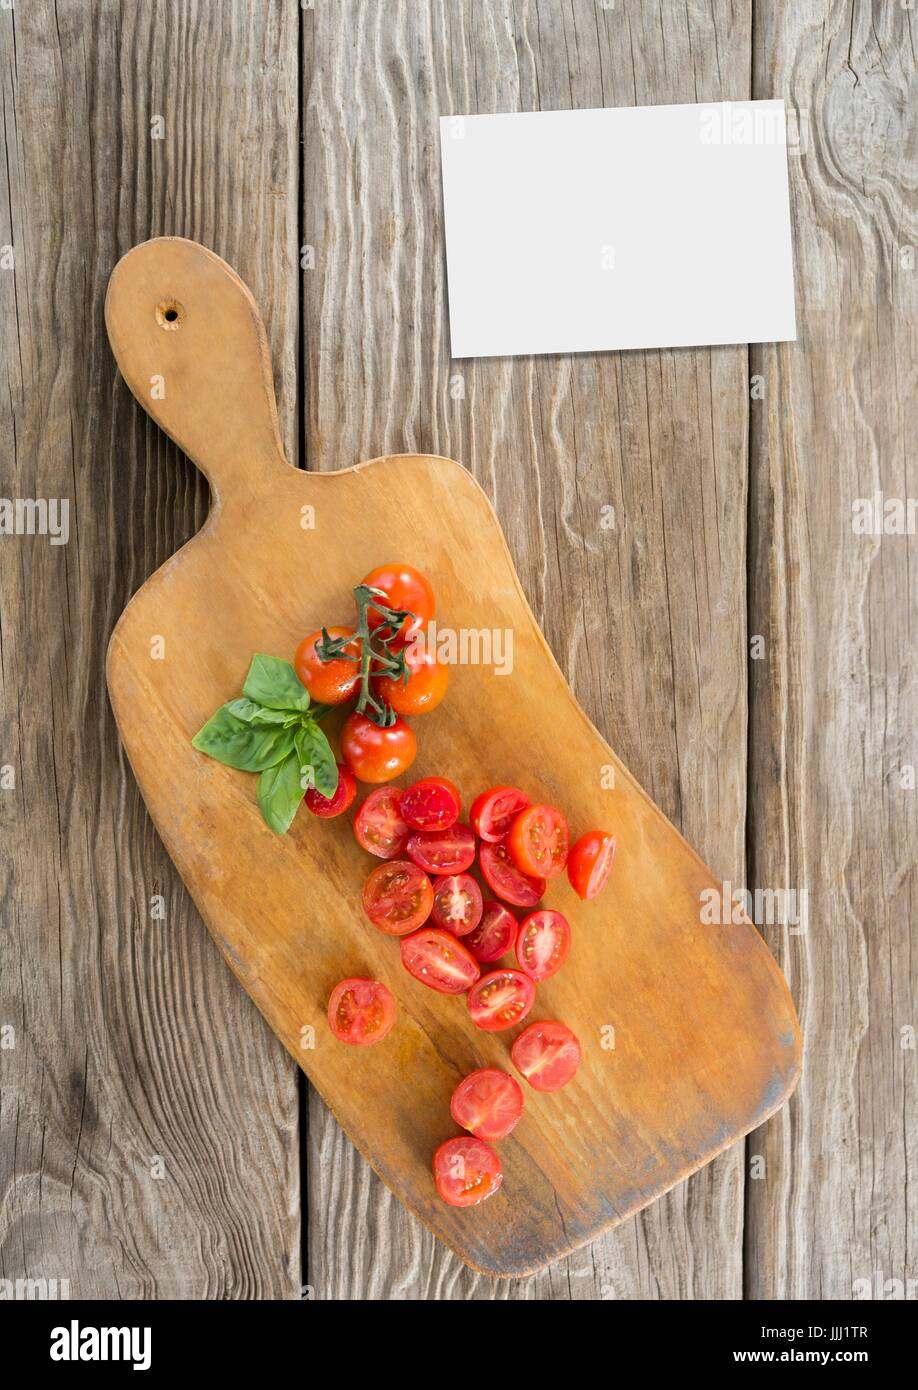 Bussiness card on wooden desk with food and copy space - Stock Image